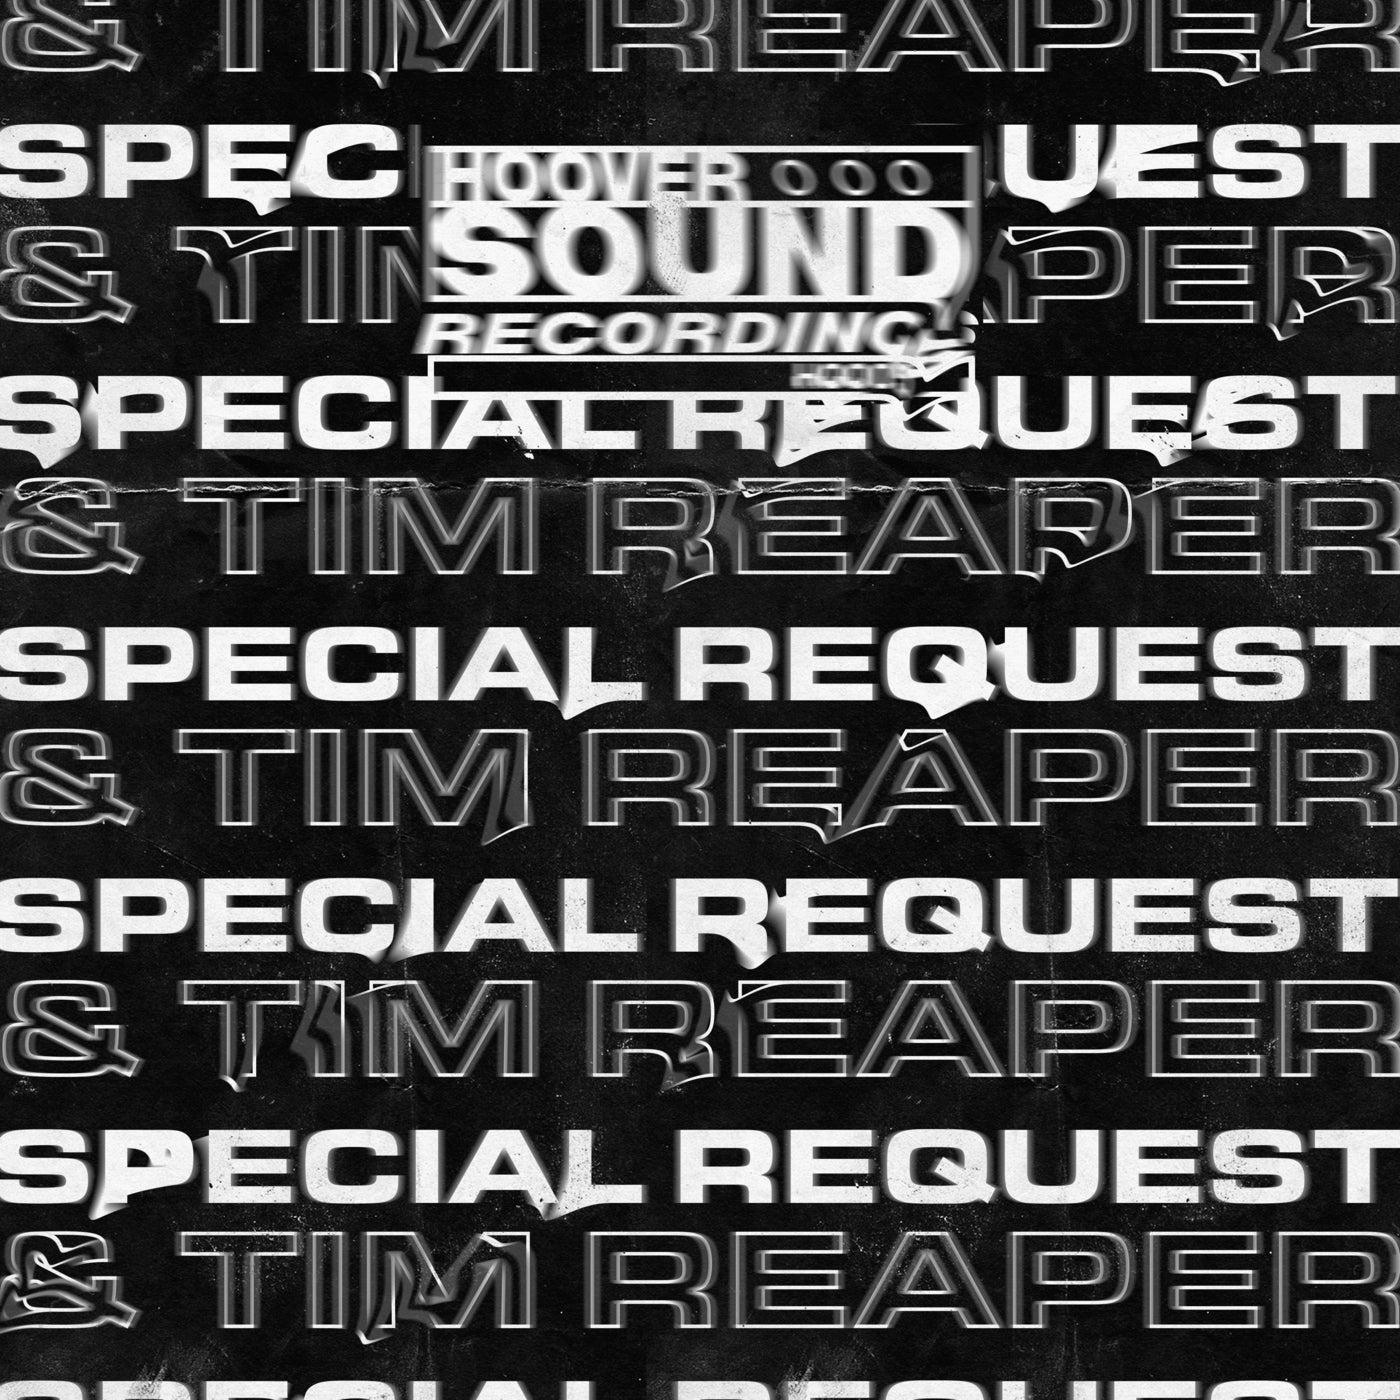 Hooversound Presents: Special Request and Tim Reaper